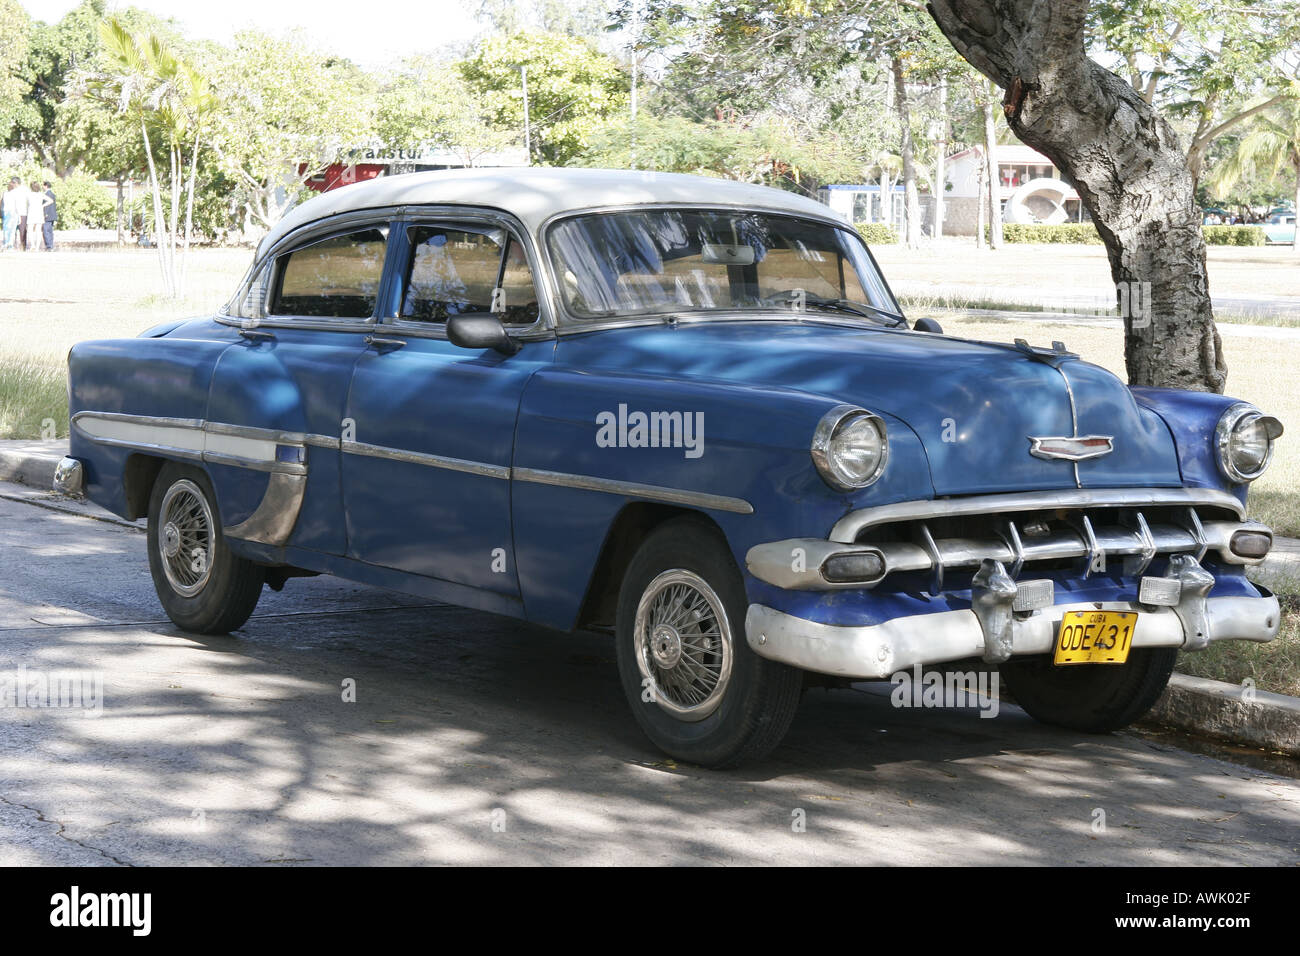 car Cuba street Holguin old antique driving Chevrolet Chevy blue ...